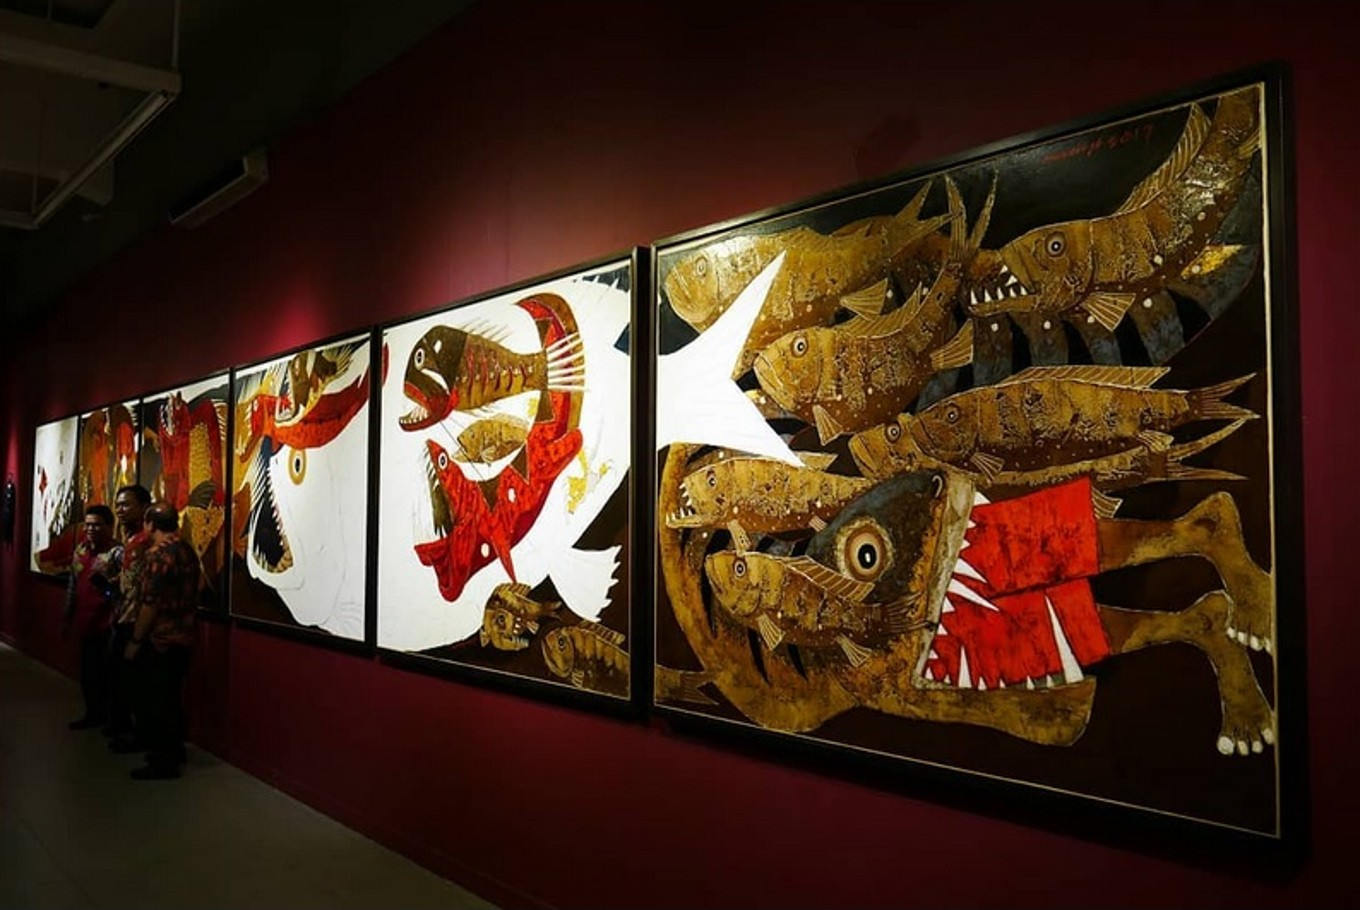 Indonesian artists' two poles collide at National Gallery exhibition